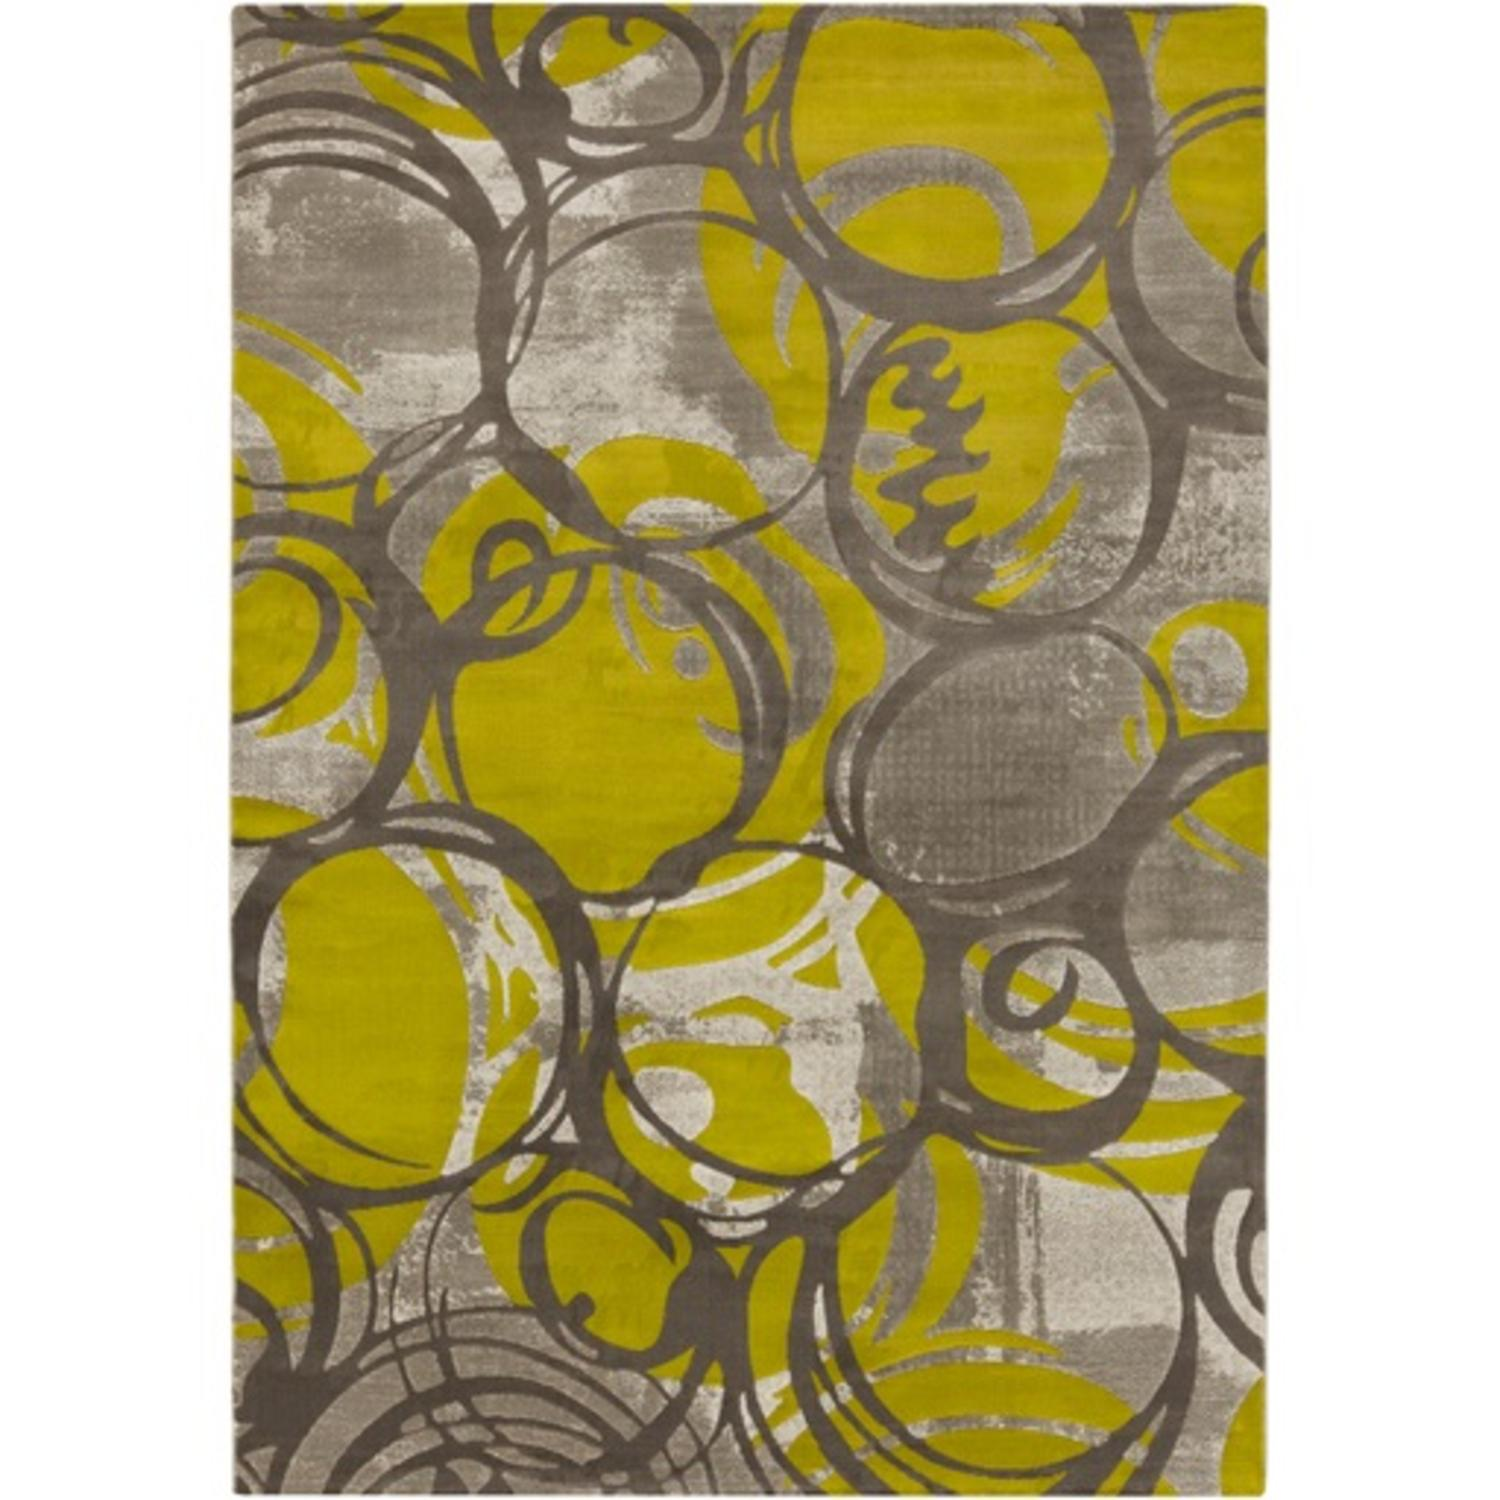 7.5' x 10.5' Neoteric Swirled Charcoal Gray and Pear Green Area Throw Rug